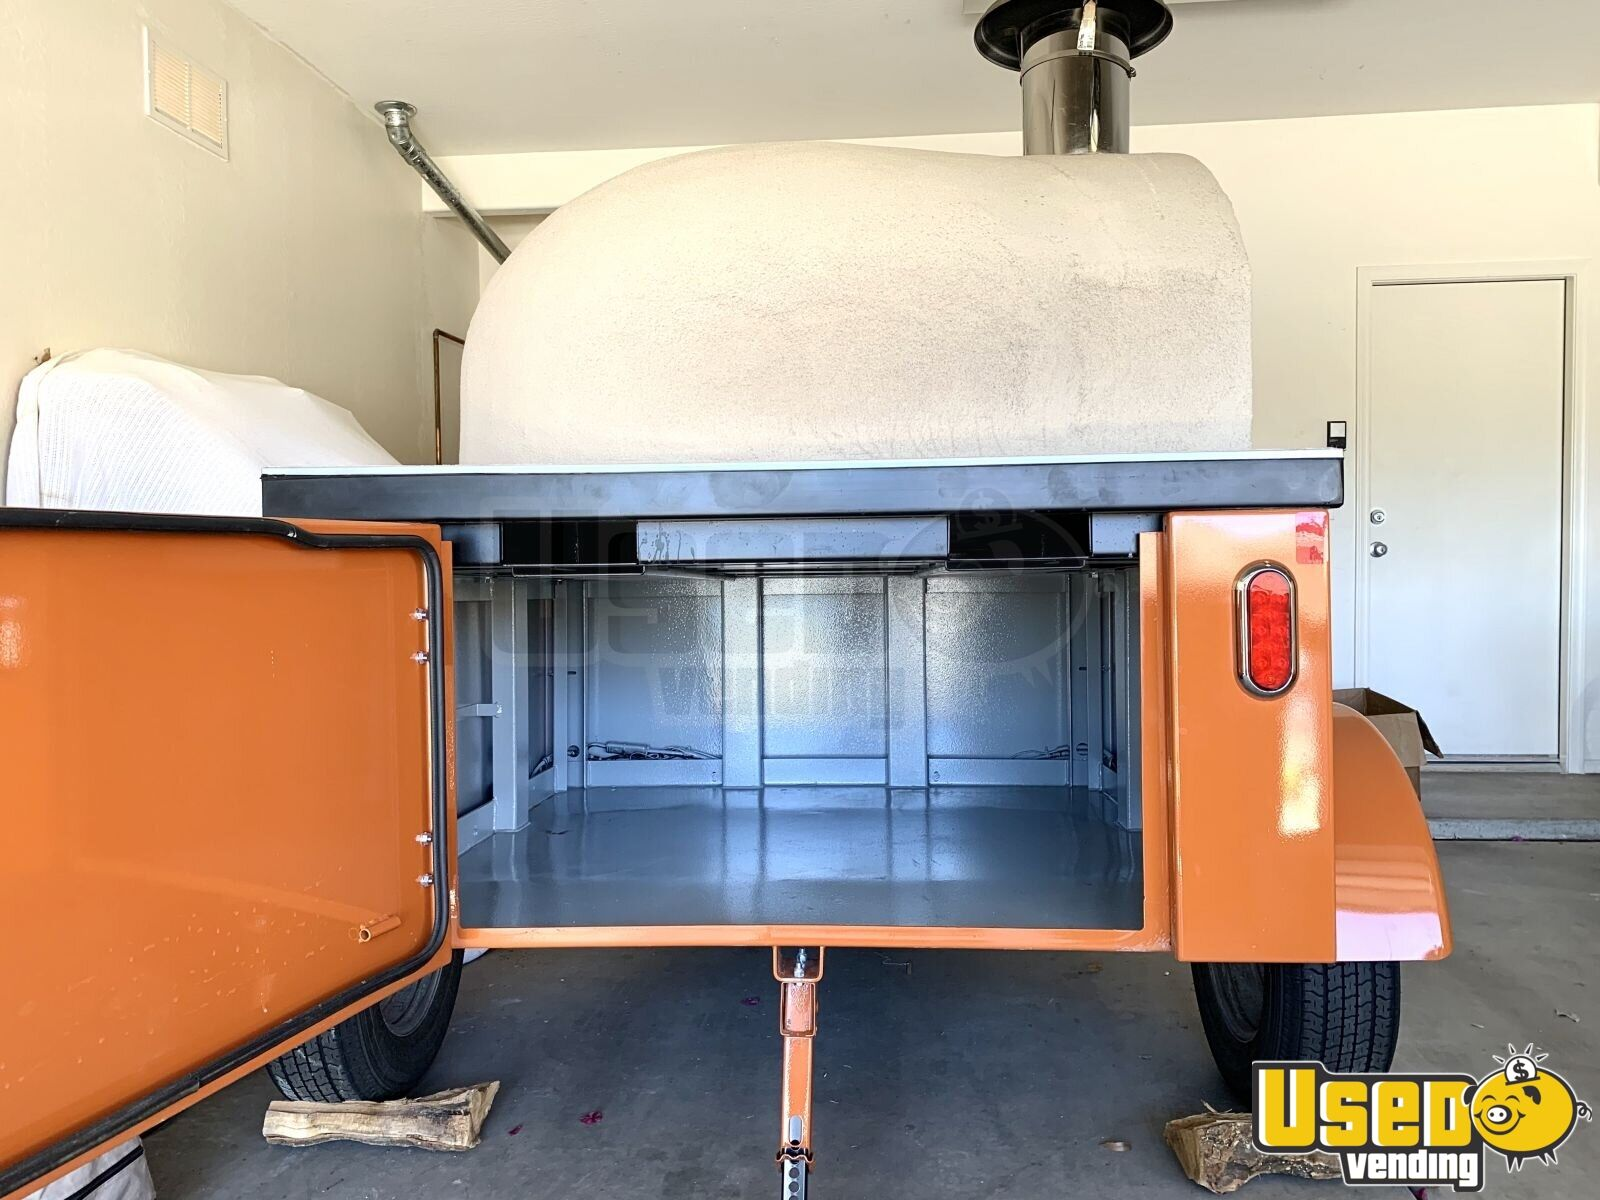 2019 Tailgate Wood-fired Pizza Concession Trailer Pizza Trailer Pizza Oven Arizona for Sale - 3